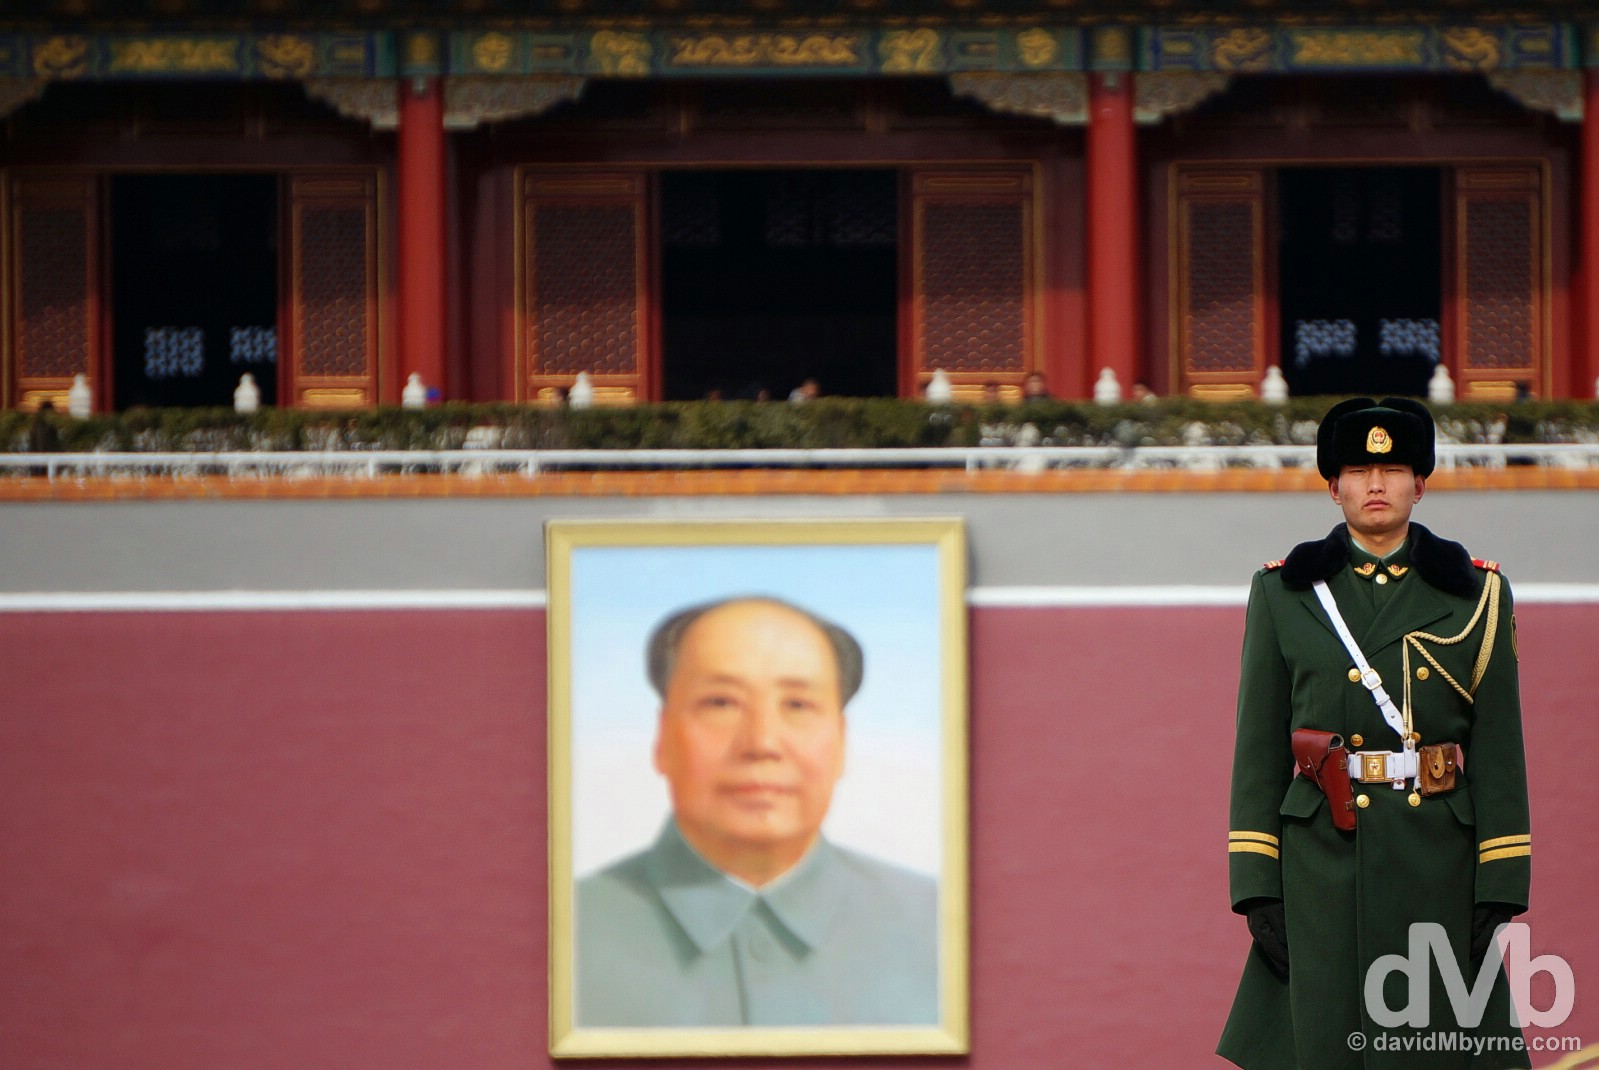 A guard in Tiananmen Square fronting the Tiananmen Gate, or Gate of Heavenly Peace, the entrance to the Place Museum, a.k.a. The Forbidden City, in Beijing, China. February 4, 2015.